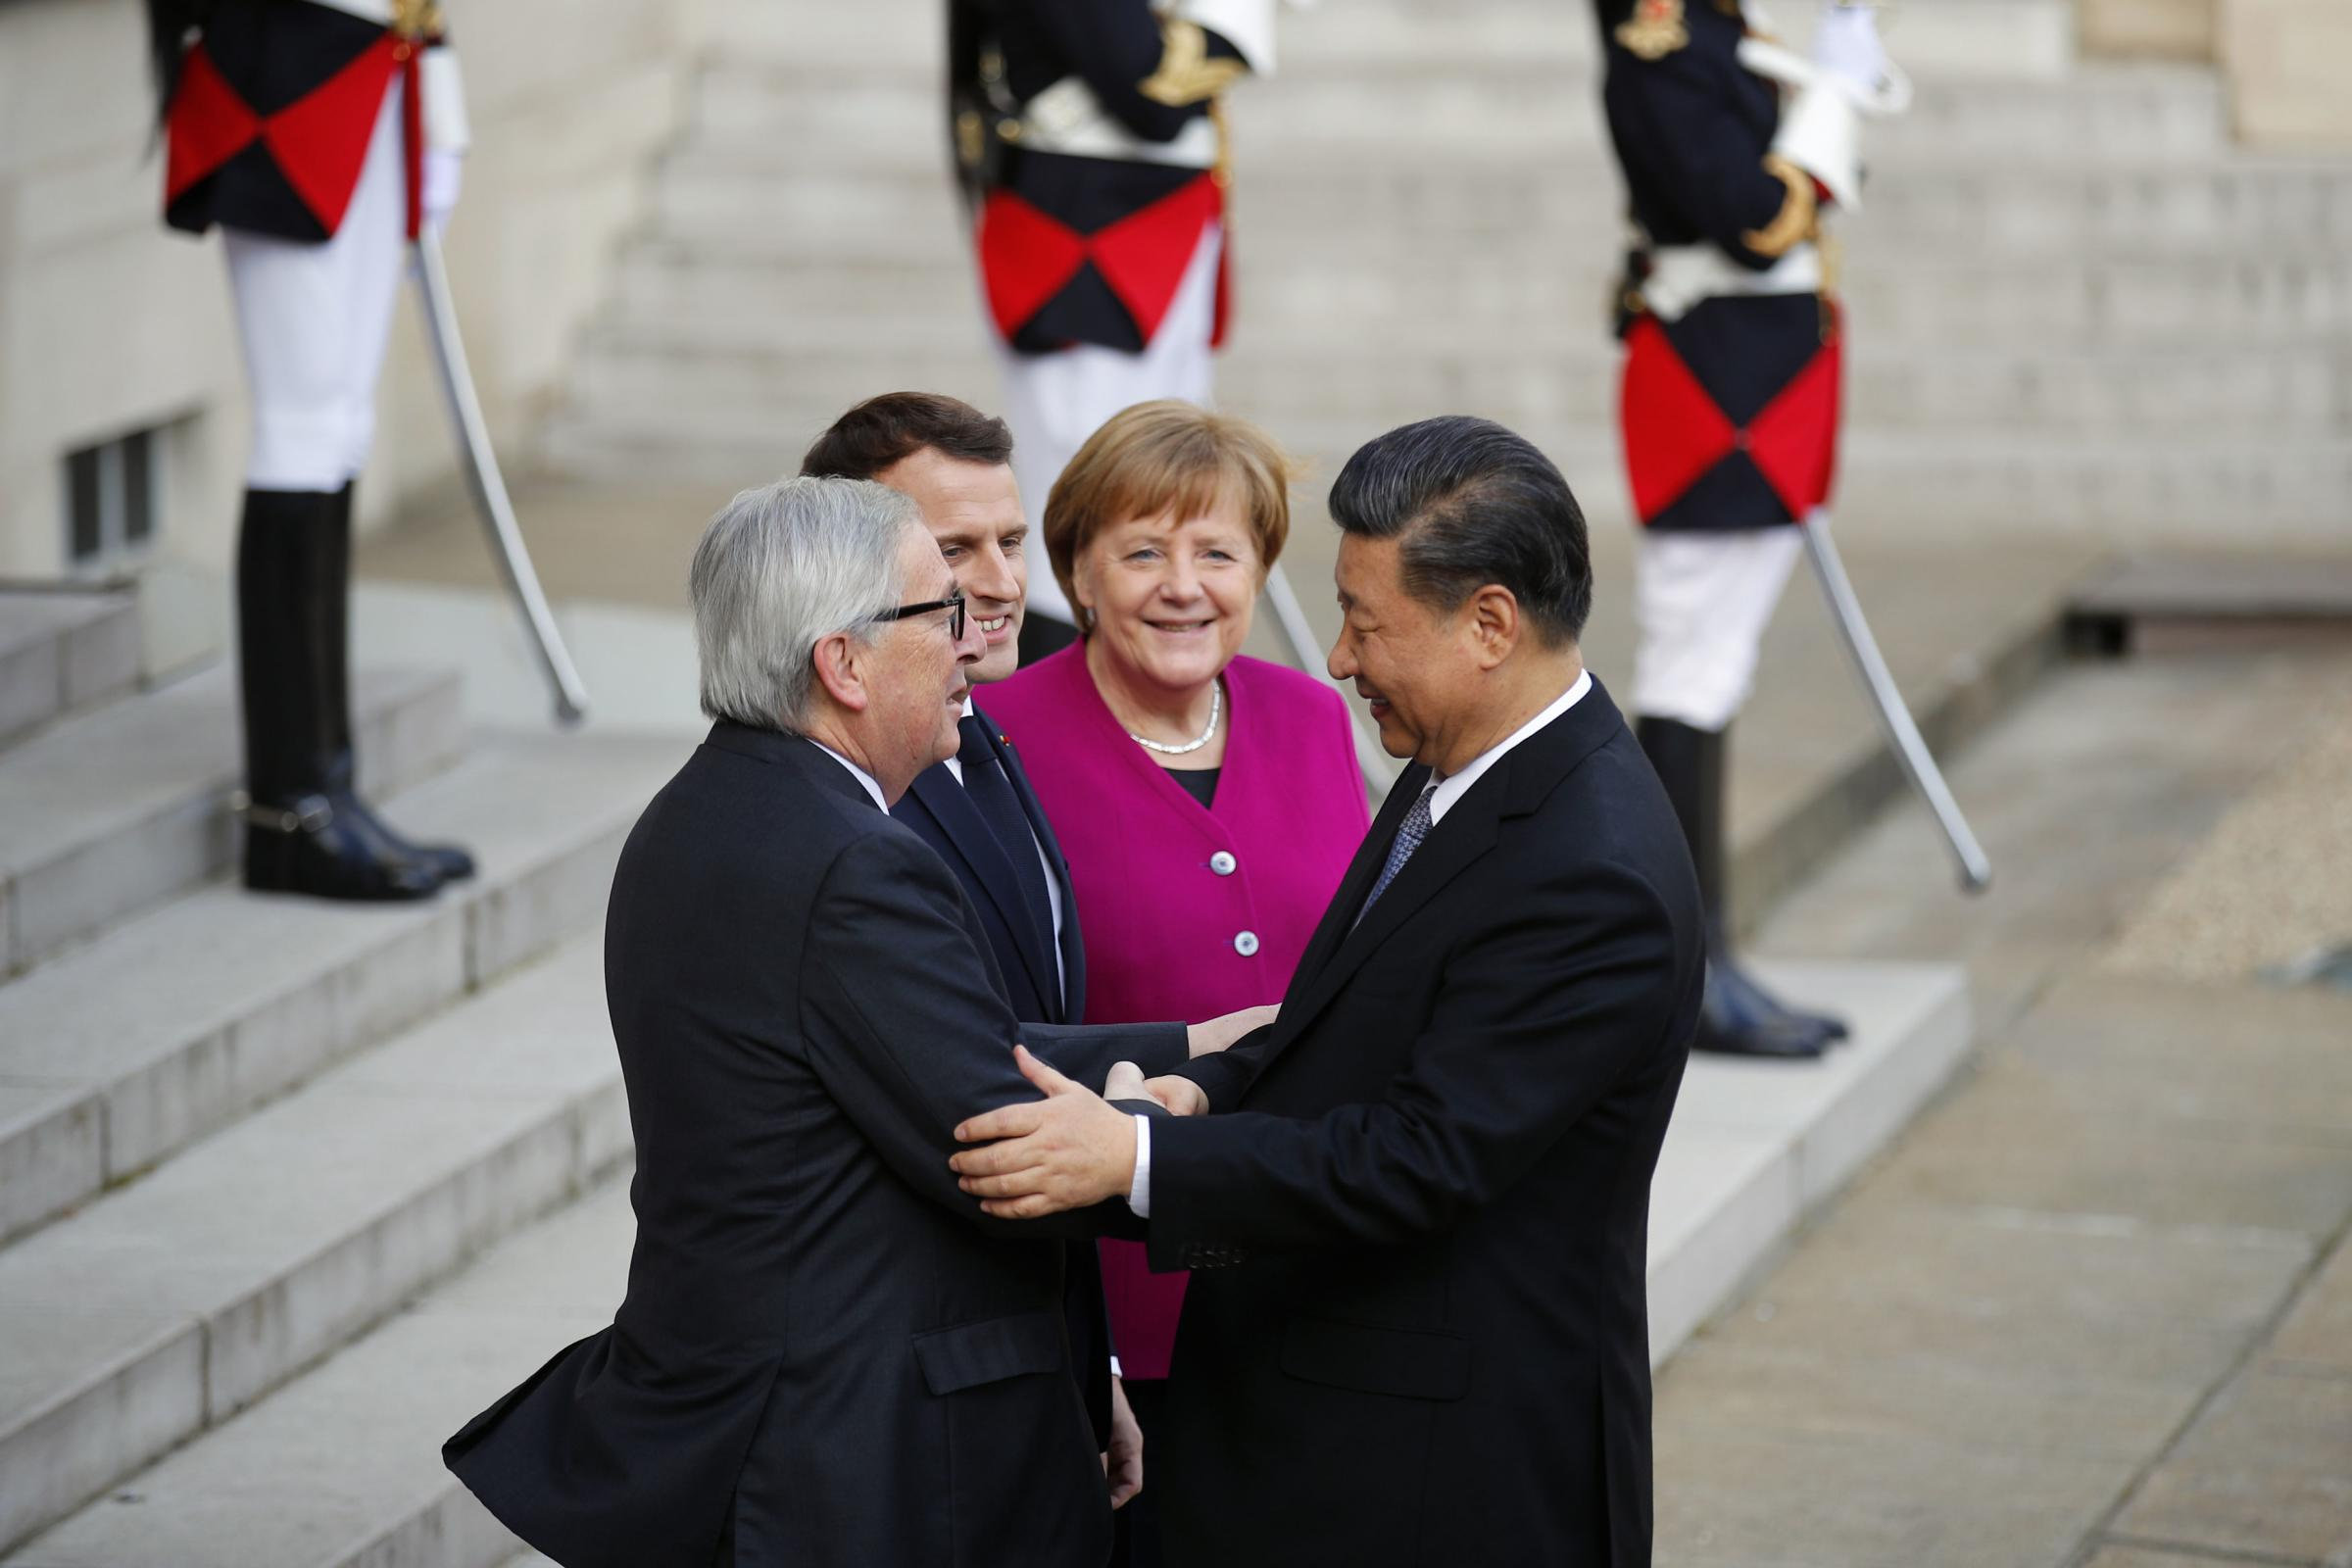 Chinese President Xi Jinping is welcomed by Emmanuel Macron, Angela Merkel, and Jean-Claude Juncker